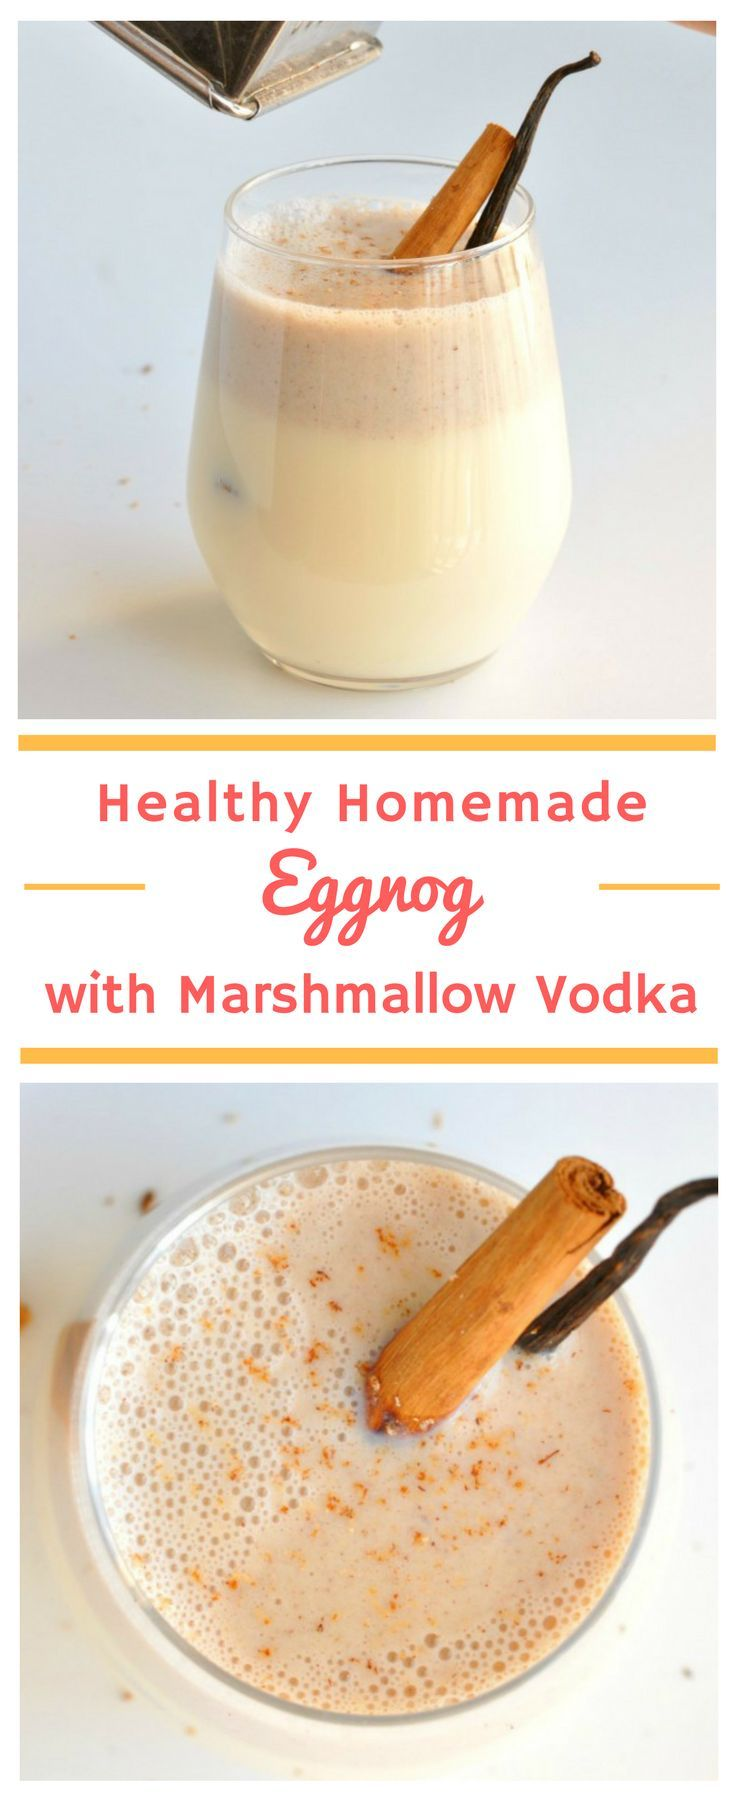 Healthy Eggnog with Marshmallow Vodka   This is the only eggnog recipe you'll ever need! A modern twist on a classic Christmas drink, everyone loves this delicious Christmas cocktail. #Christmas #MerryChristmas #DrinkRecipe #CocktailRecipe #HealthyRecipe #Eggnog #EggnogRecipe #HealthyDrinks #HealthyCocktails #ChristmasDrinks #ChristmasCocktails #ChristmasParty #HomemadeEggnog